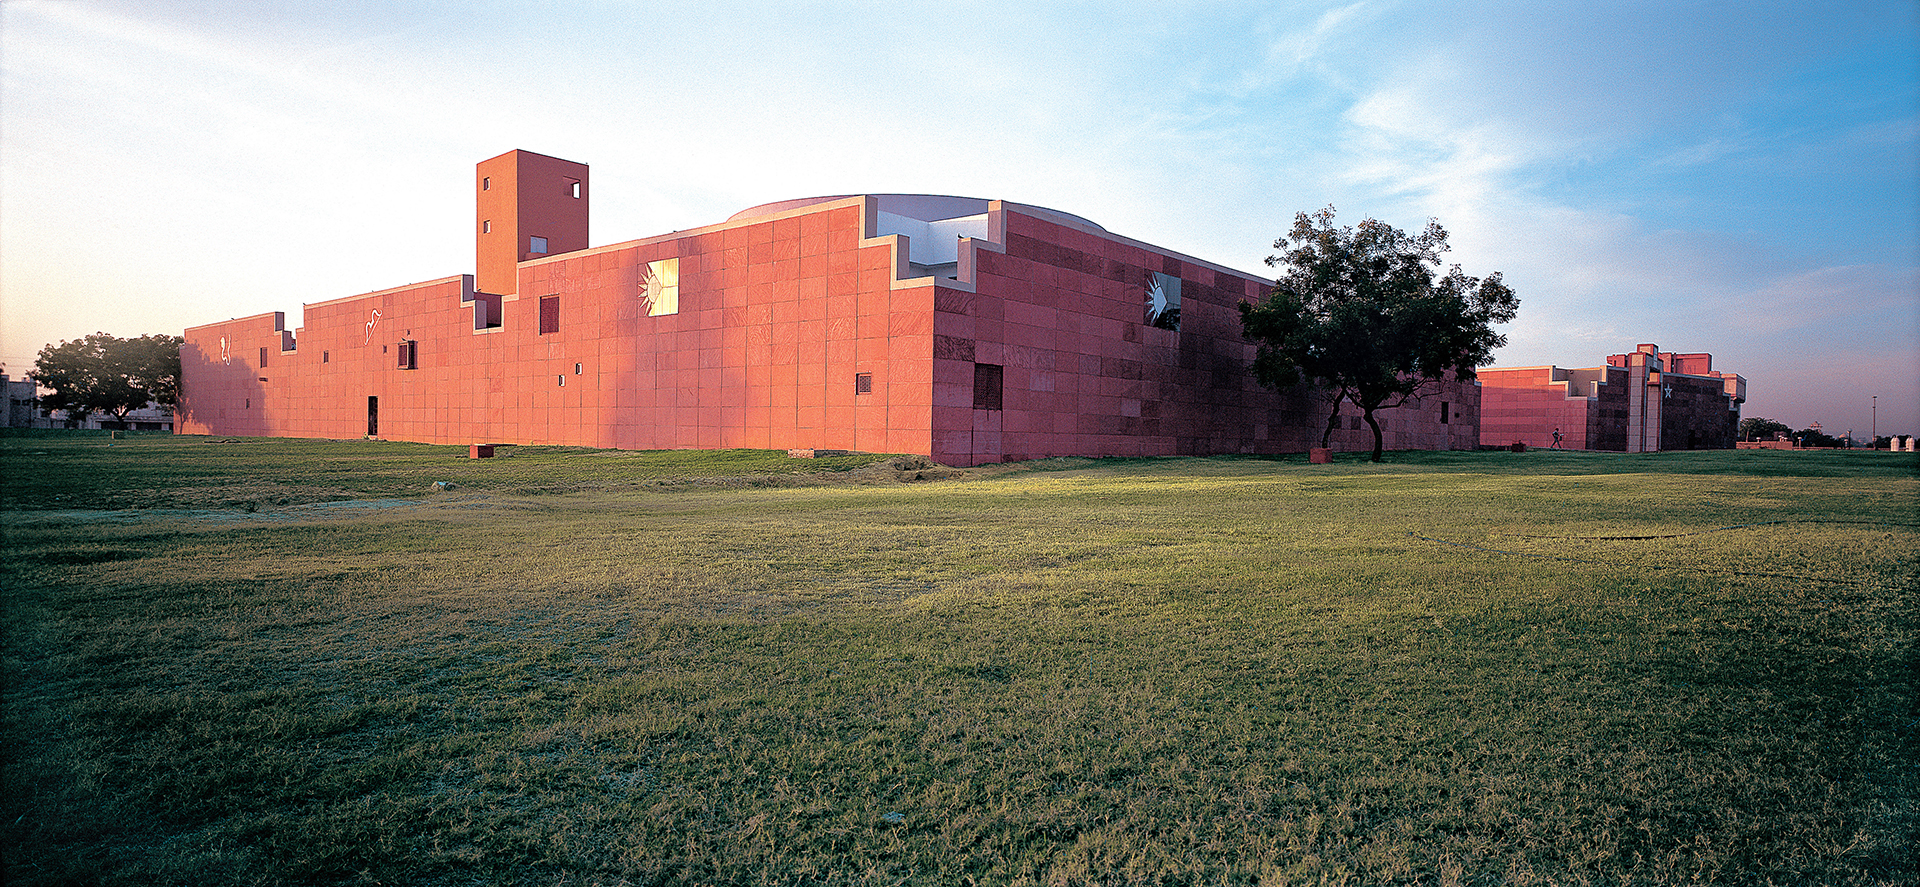 The museum complex surrounds a beautiful landscape | JKK | Charles Correa Associates | STIR